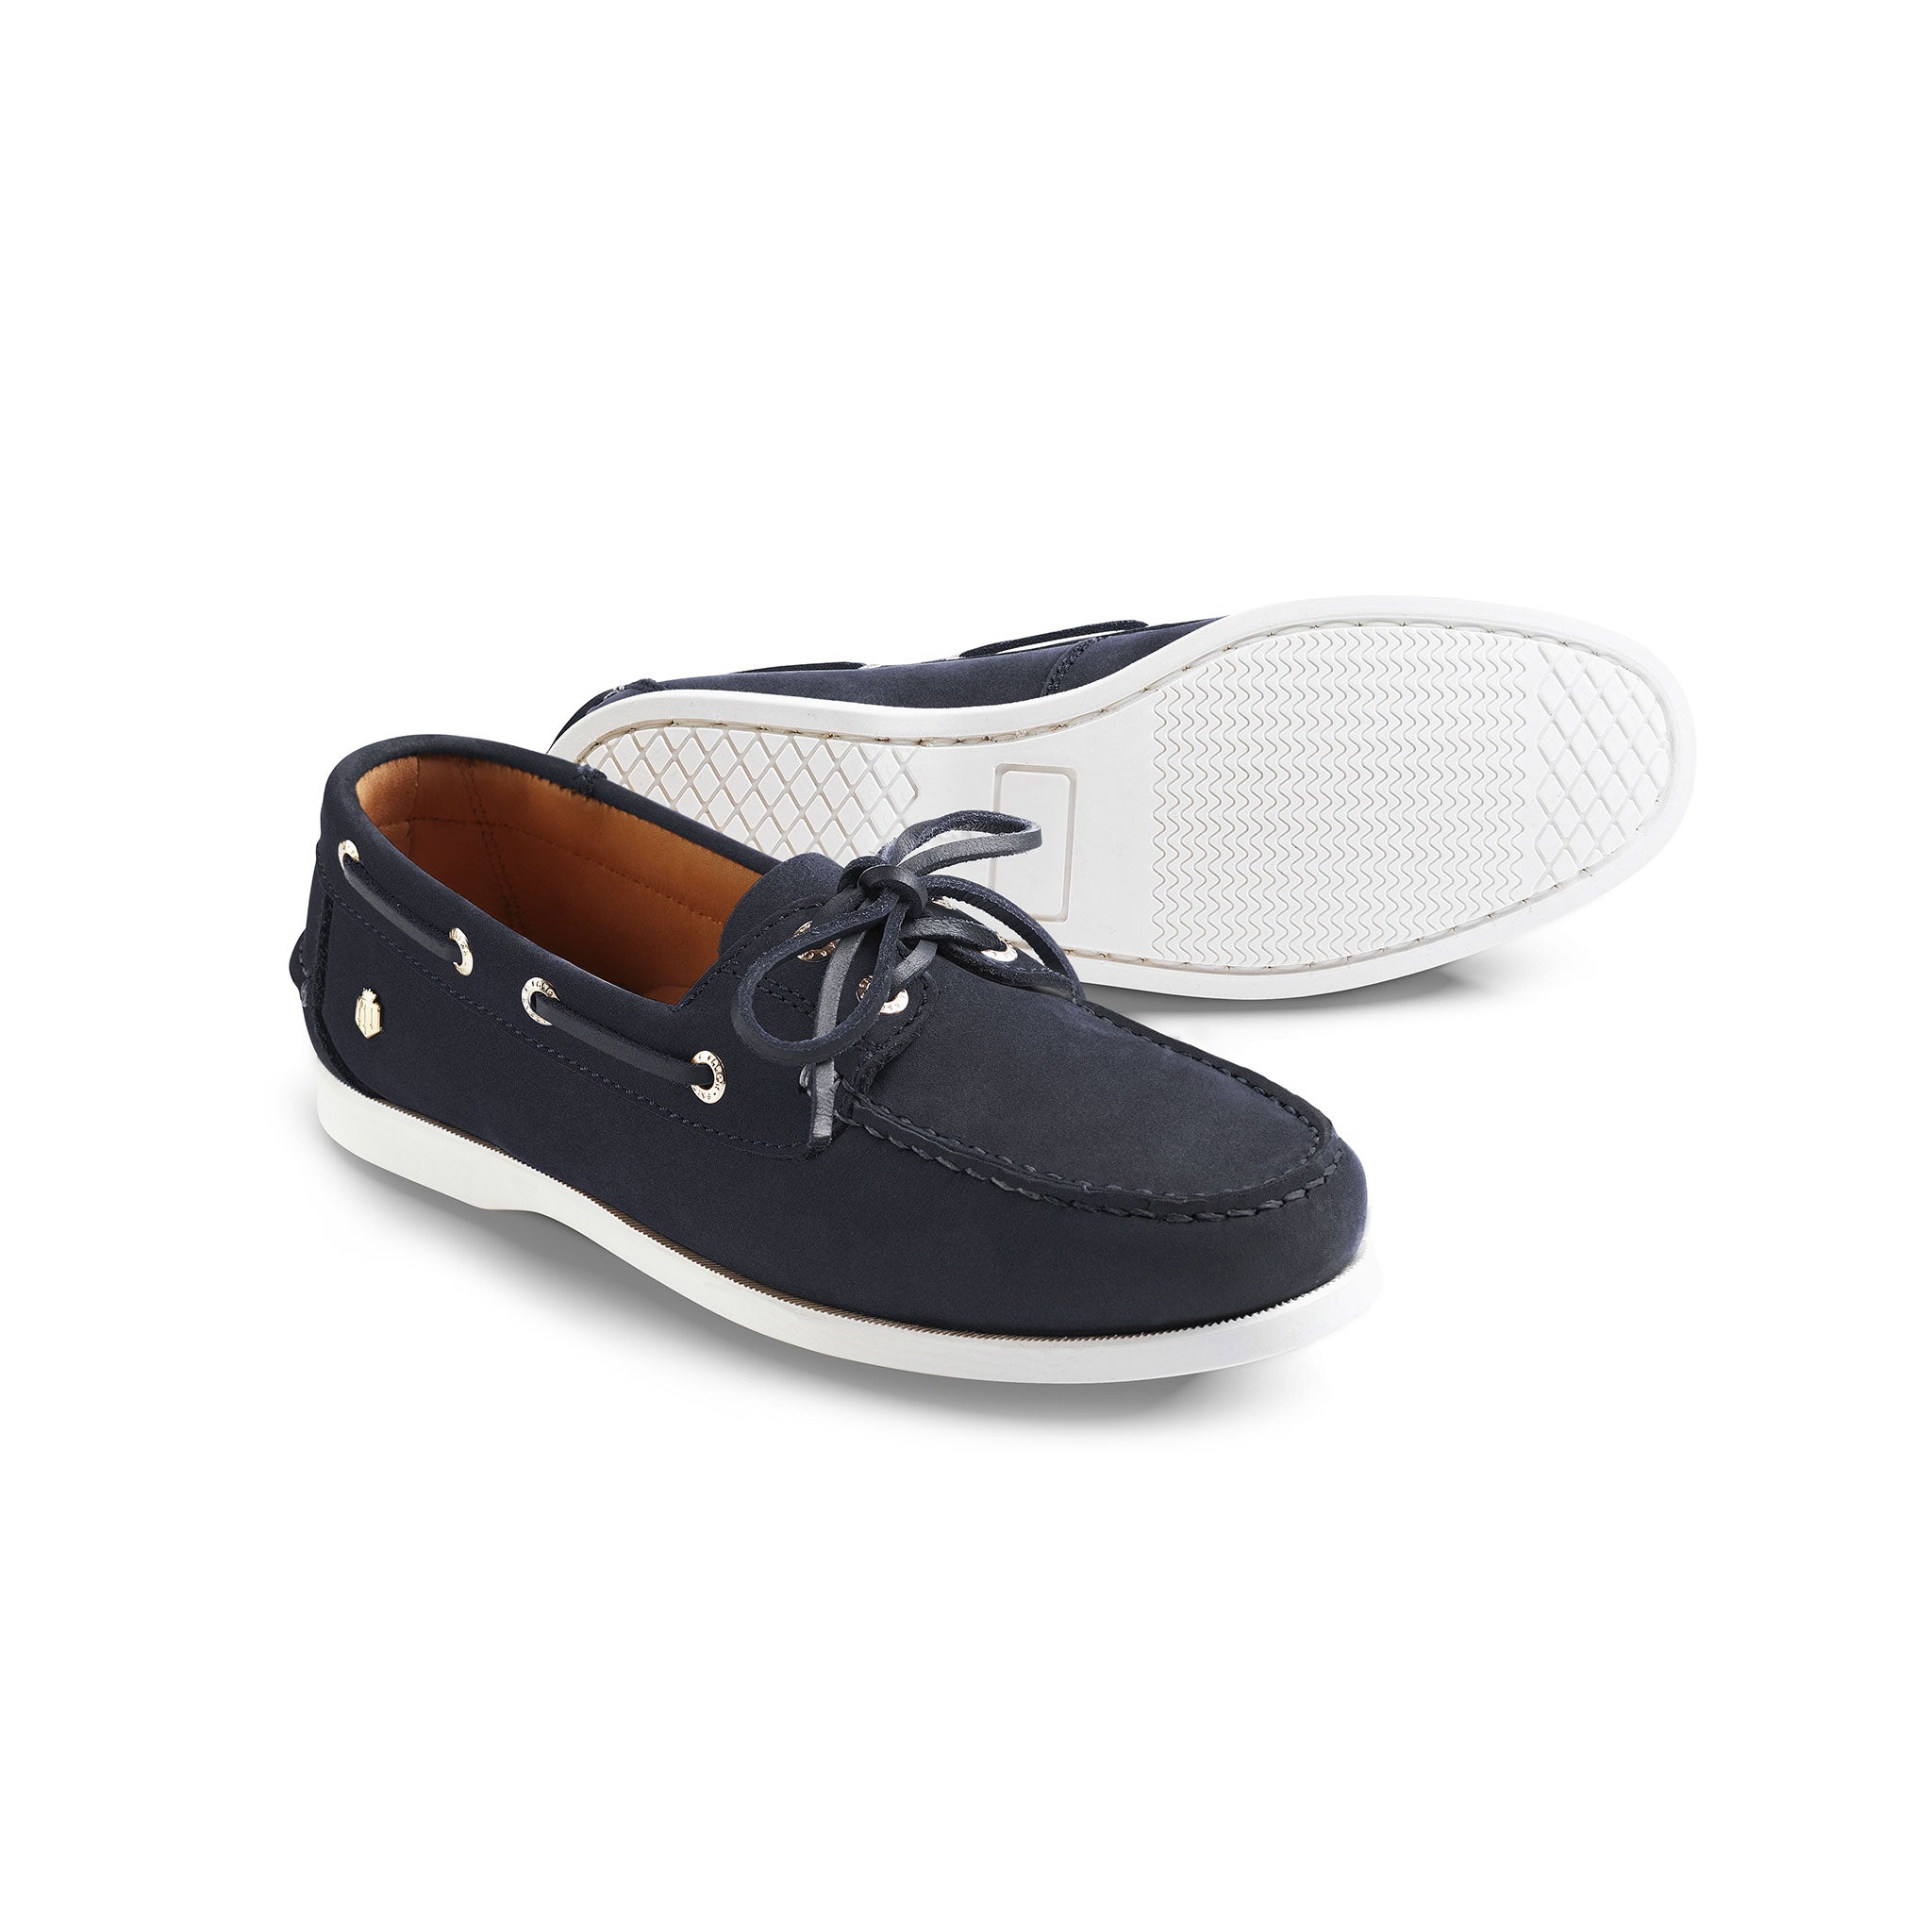 Fairfax and Favor Salcombe Deck Shoe for Ladies in Navy